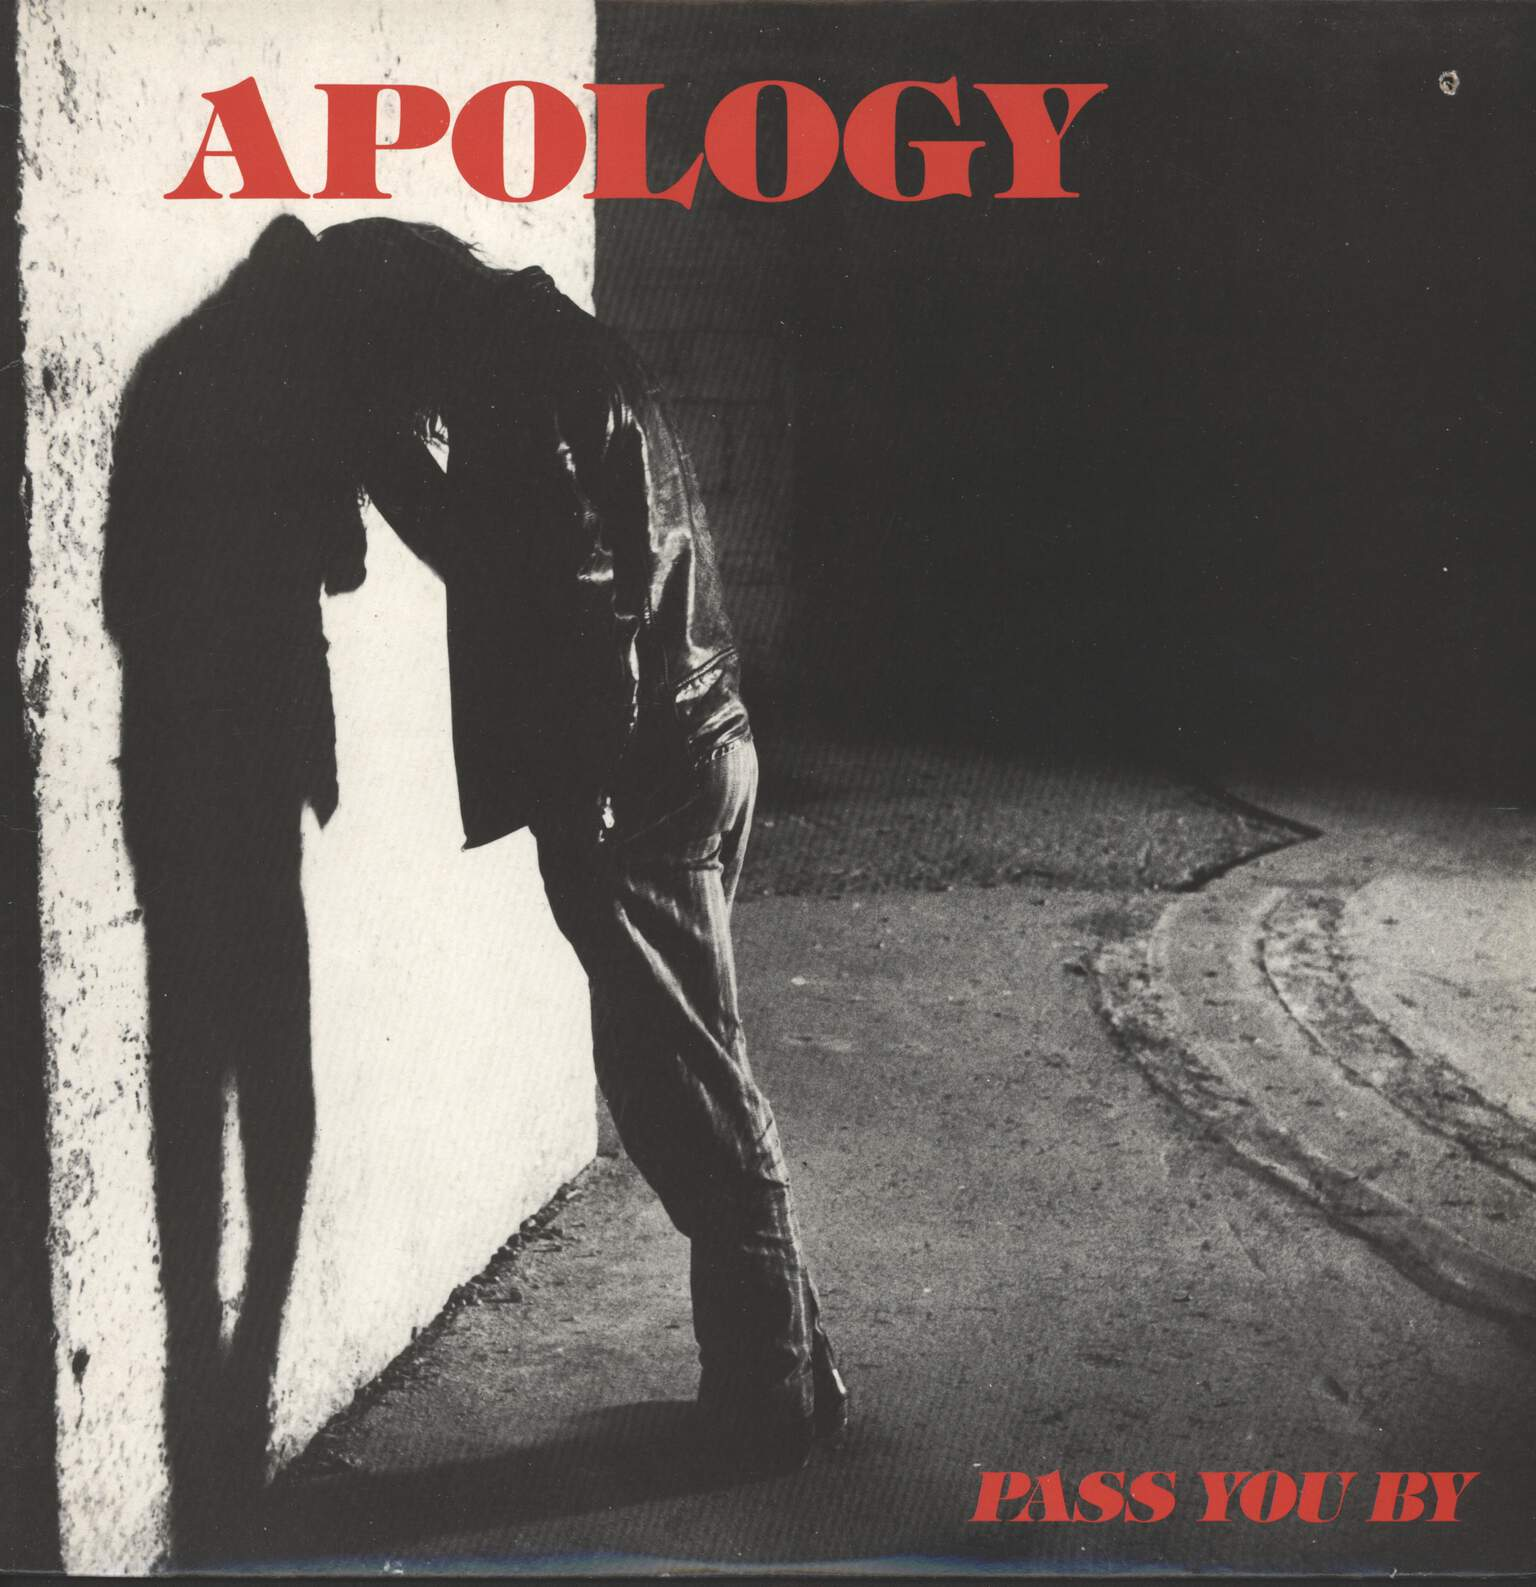 Apology: Pass You By, Mini LP (Vinyl)